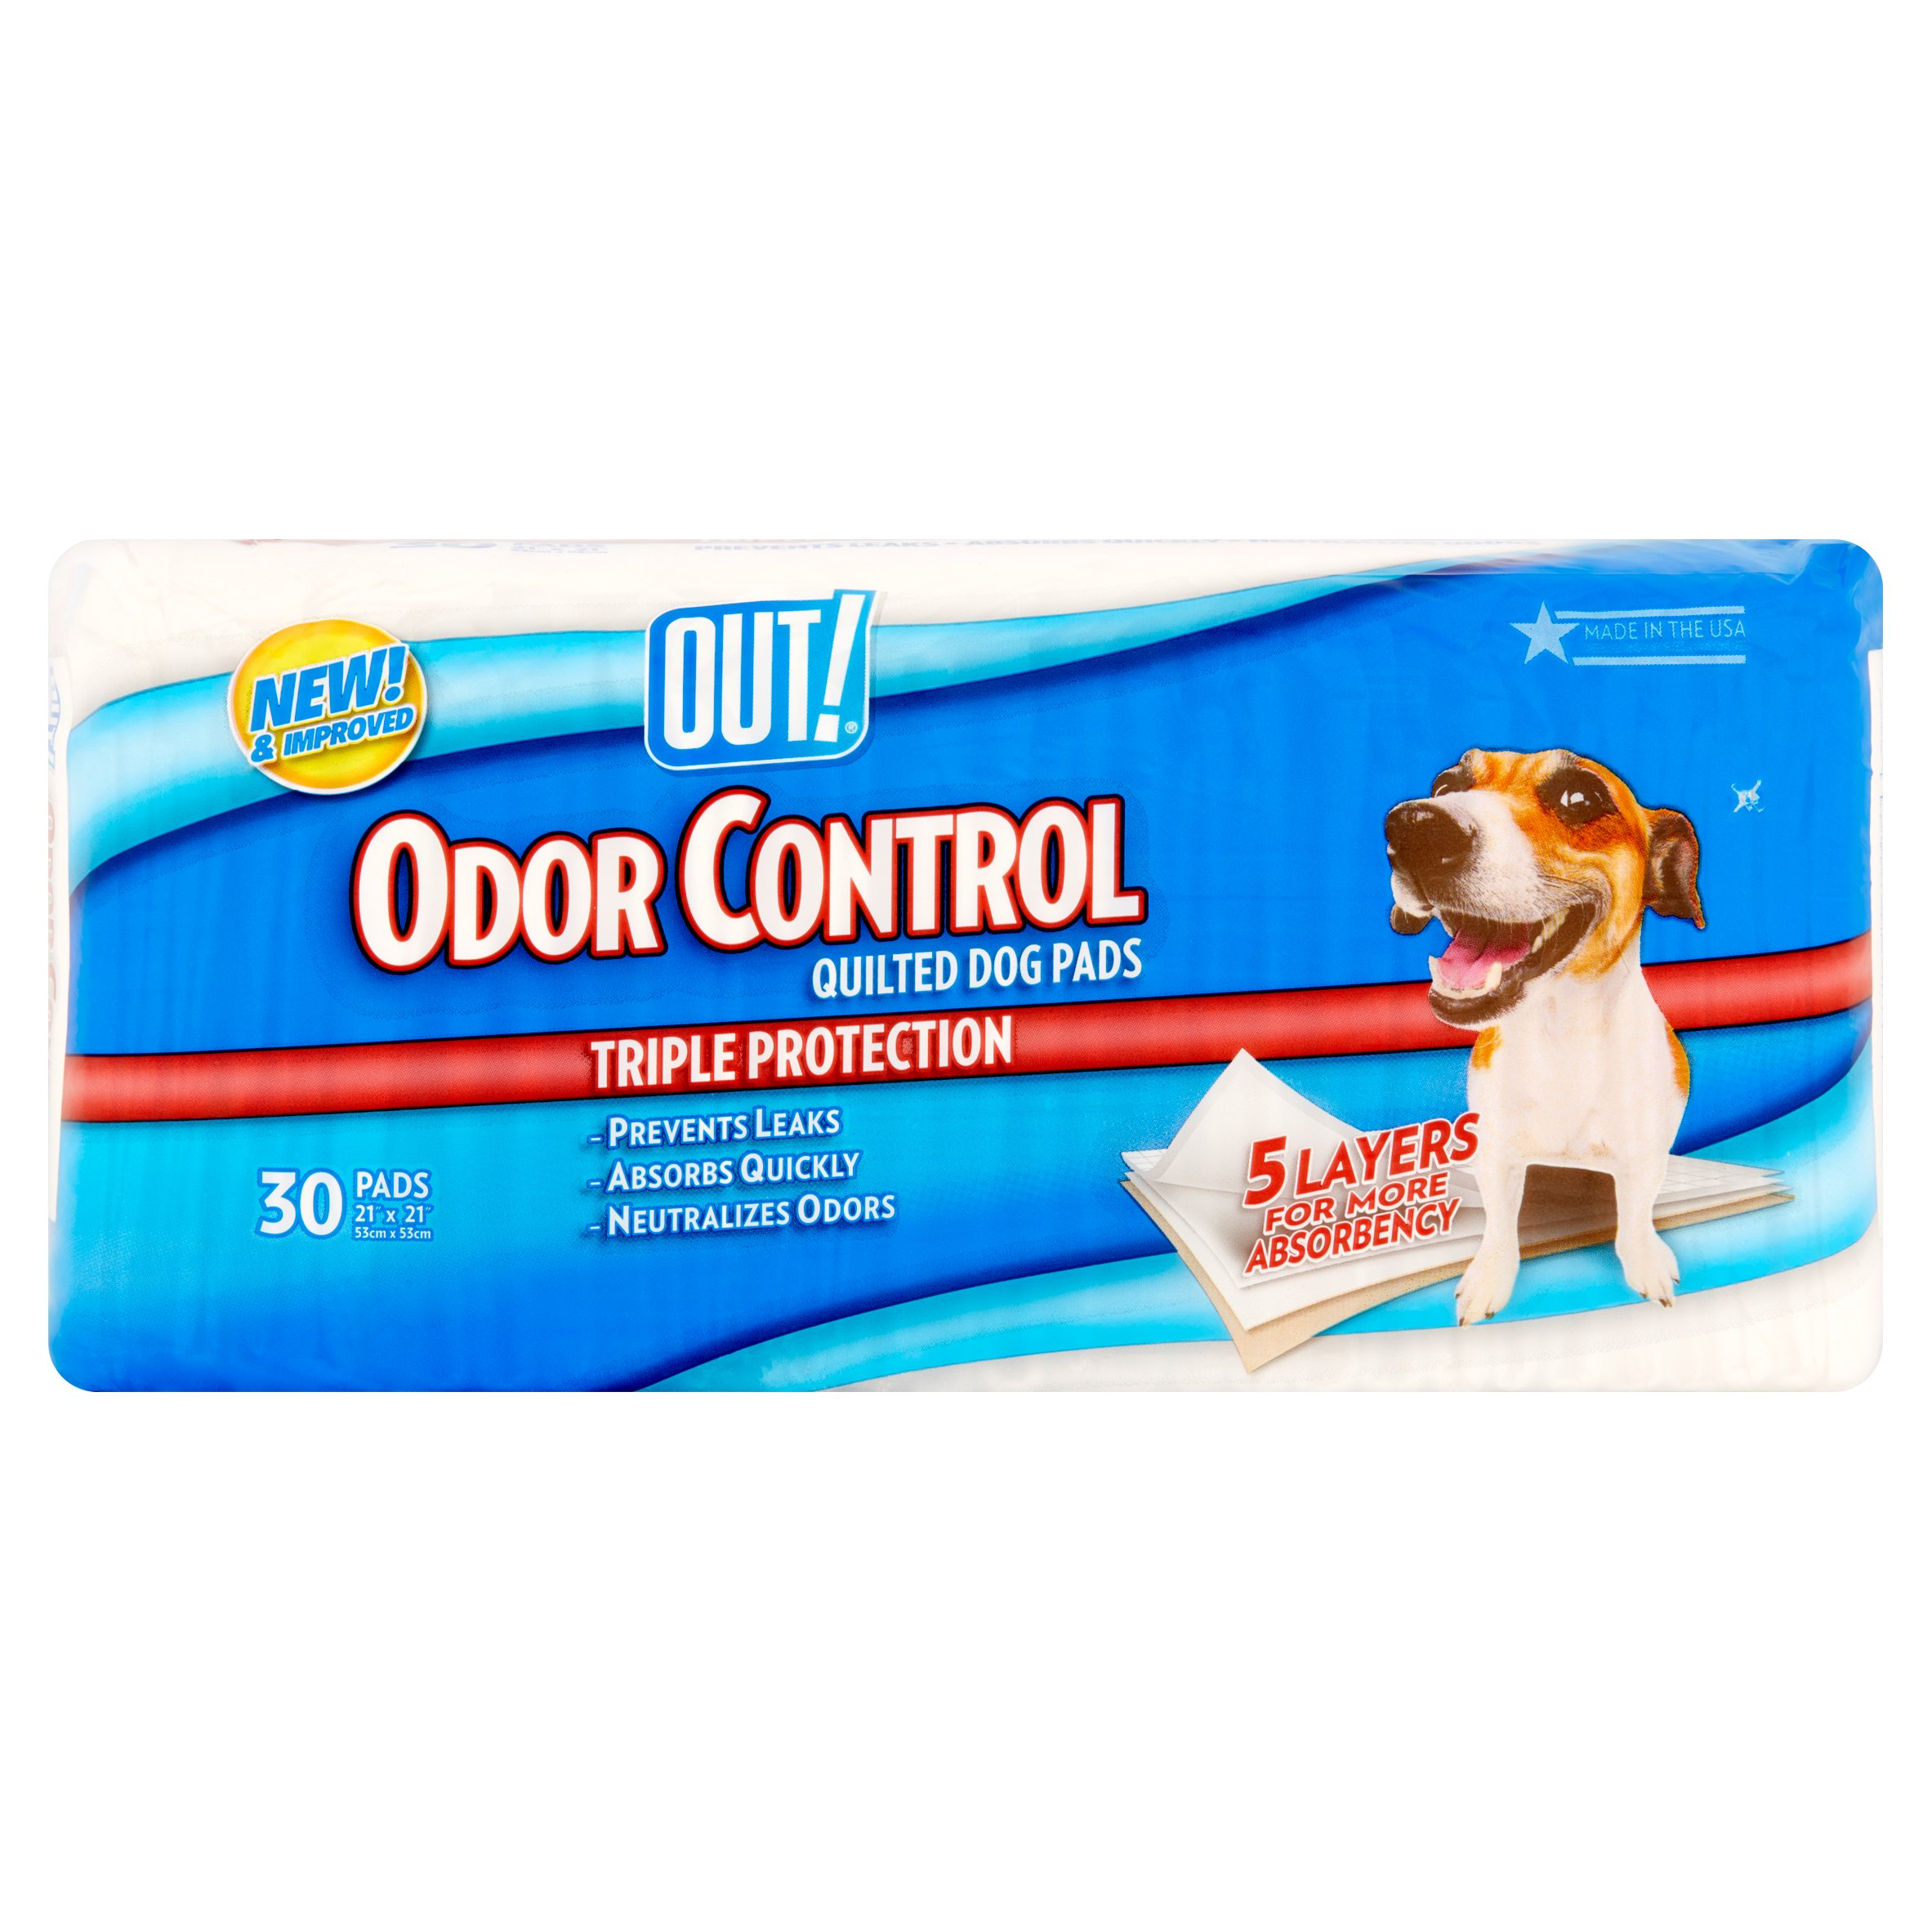 Out! Odor Control Quilted Dog Pads, 30 count